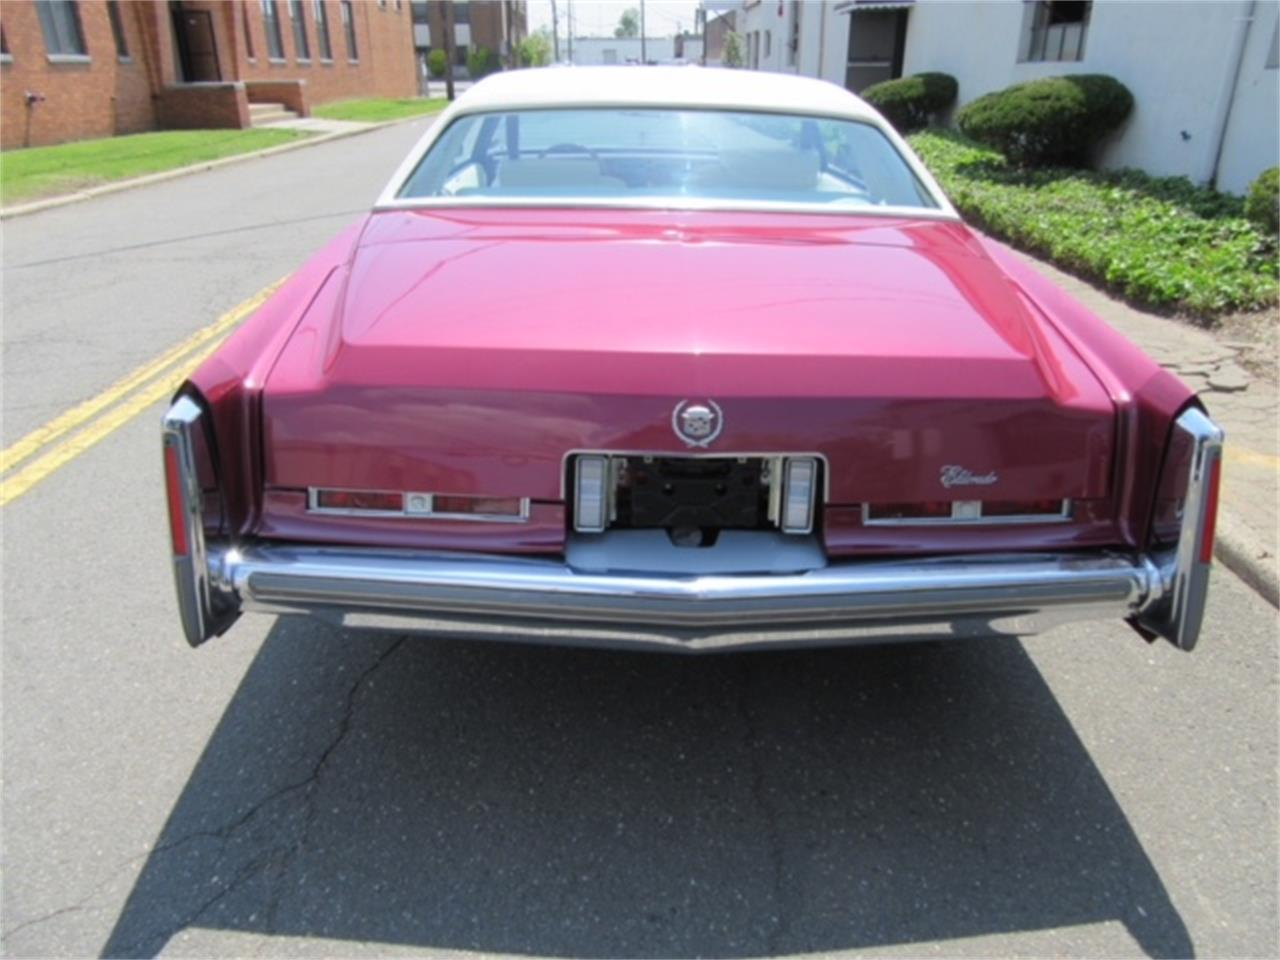 Large Picture of 1974 Cadillac Eldorado located in Pennsylvania Offered by Central Pennsylvania Auto Auction - NHIV